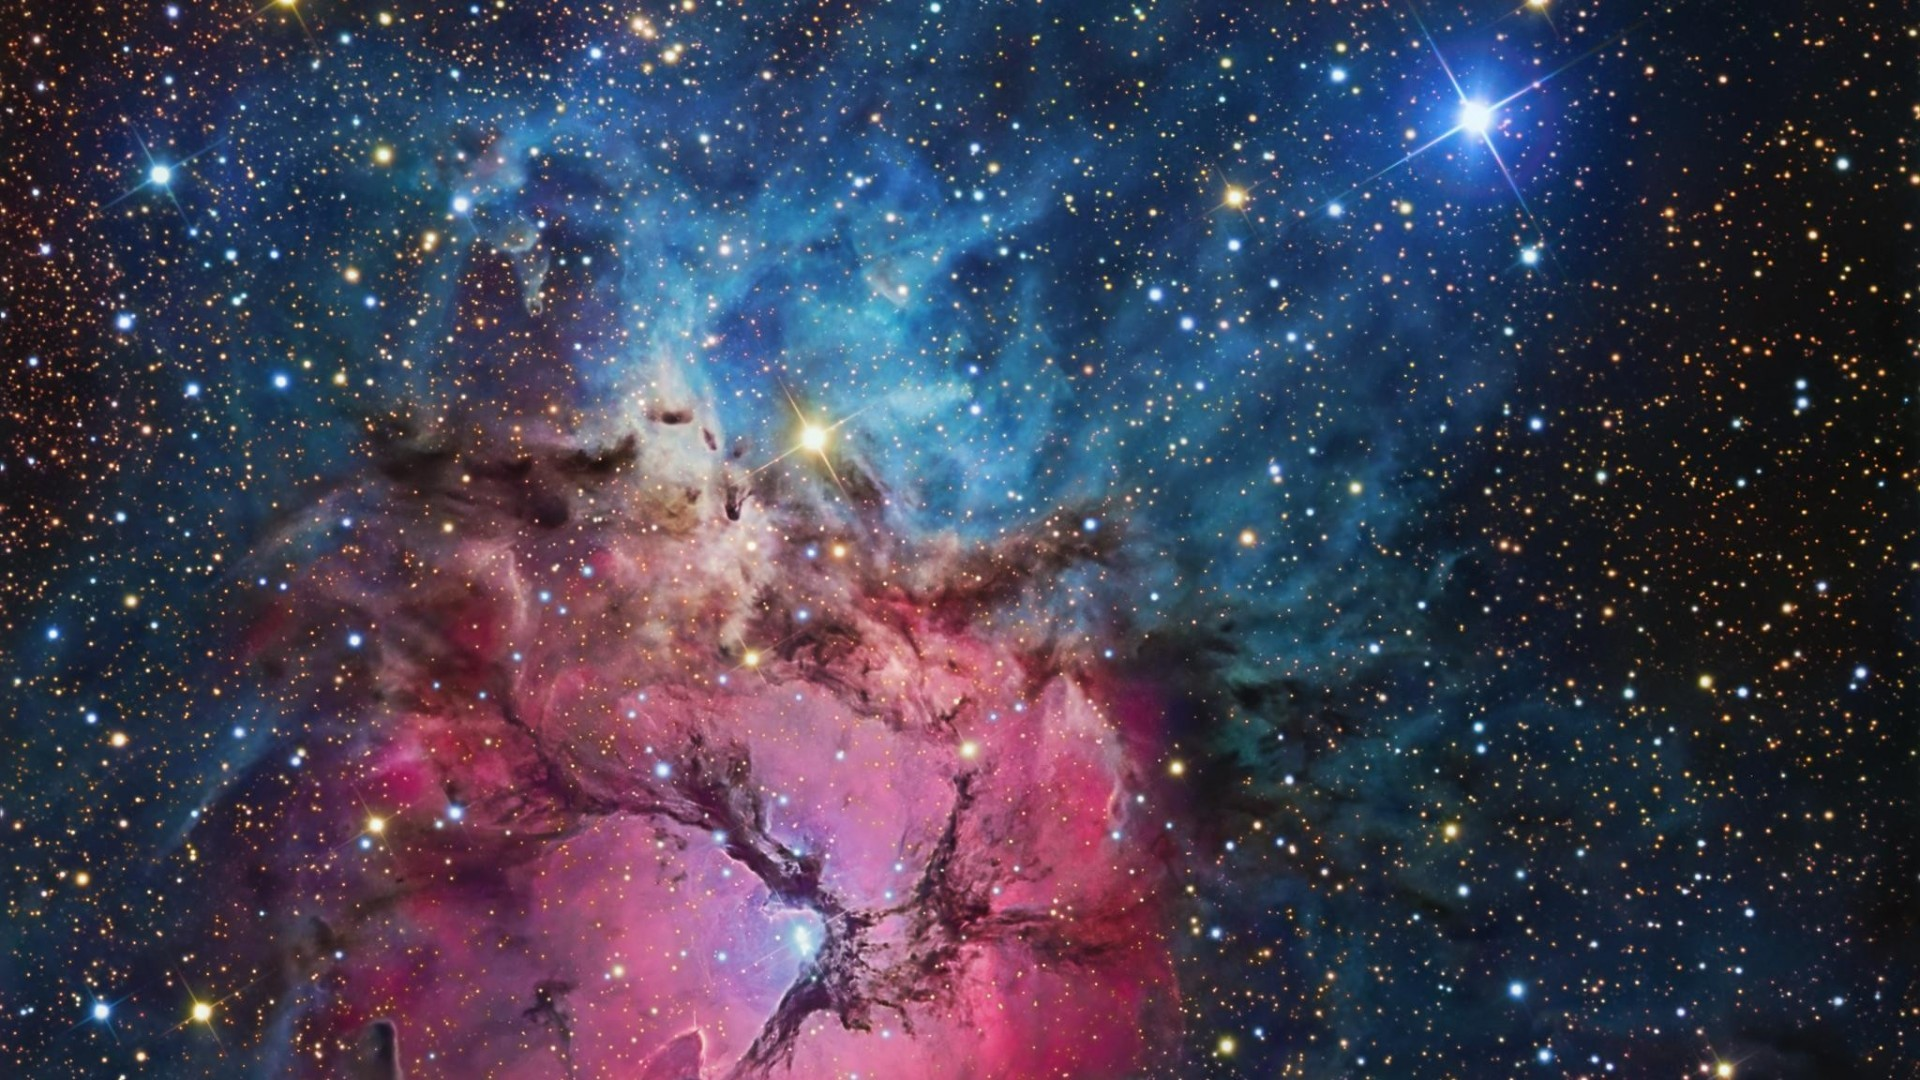 Hubble Hd Wallpaper 68 Pictures